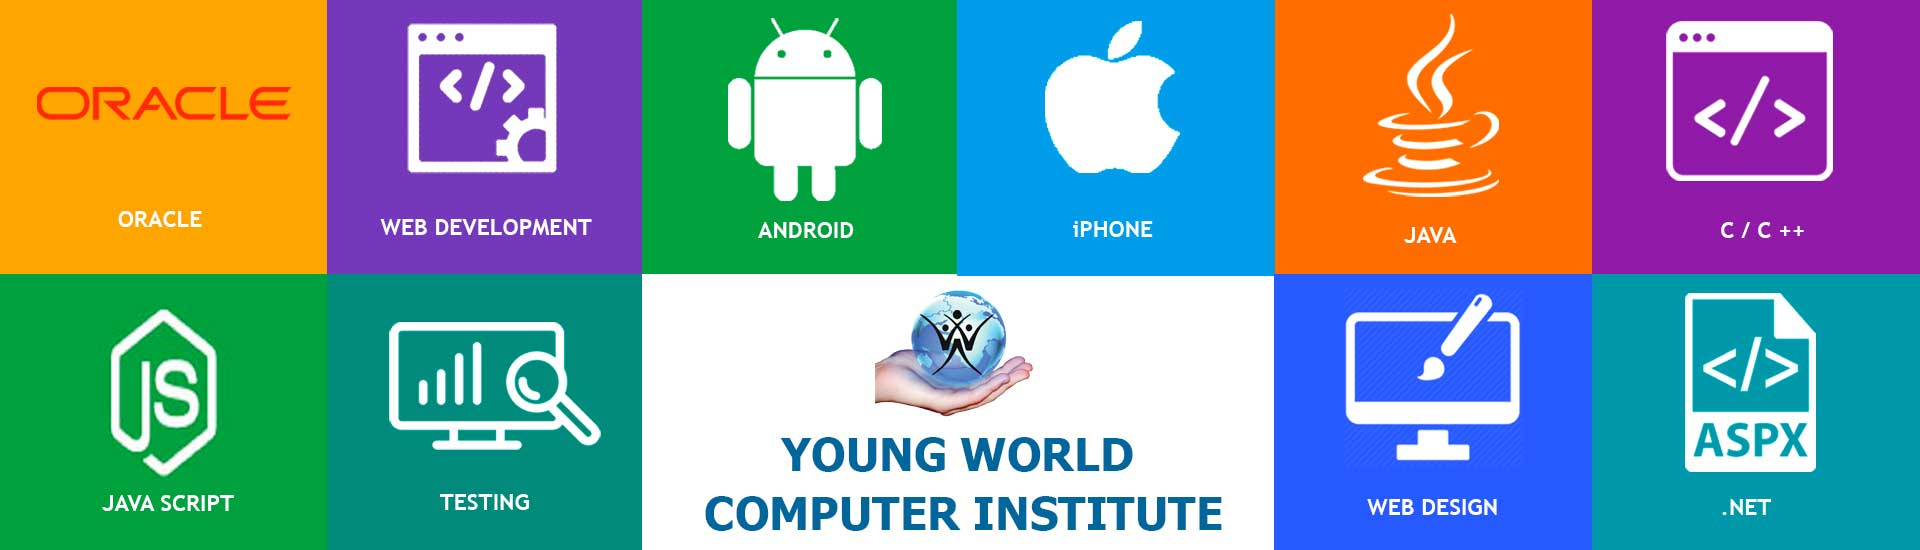 YOUNG WORLD COMPUTER INSTITUTE IN ANAND, GUJARAT, INDIA